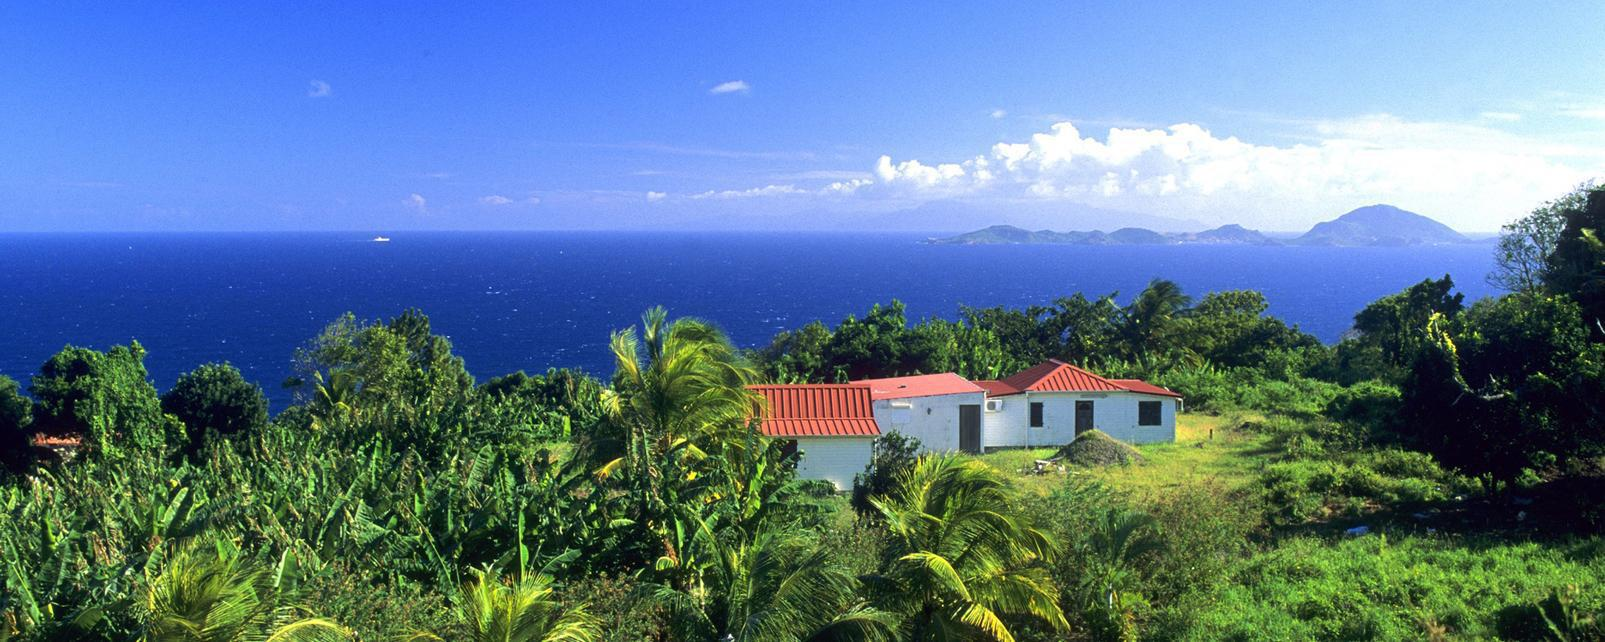 wetter in guadeloupe